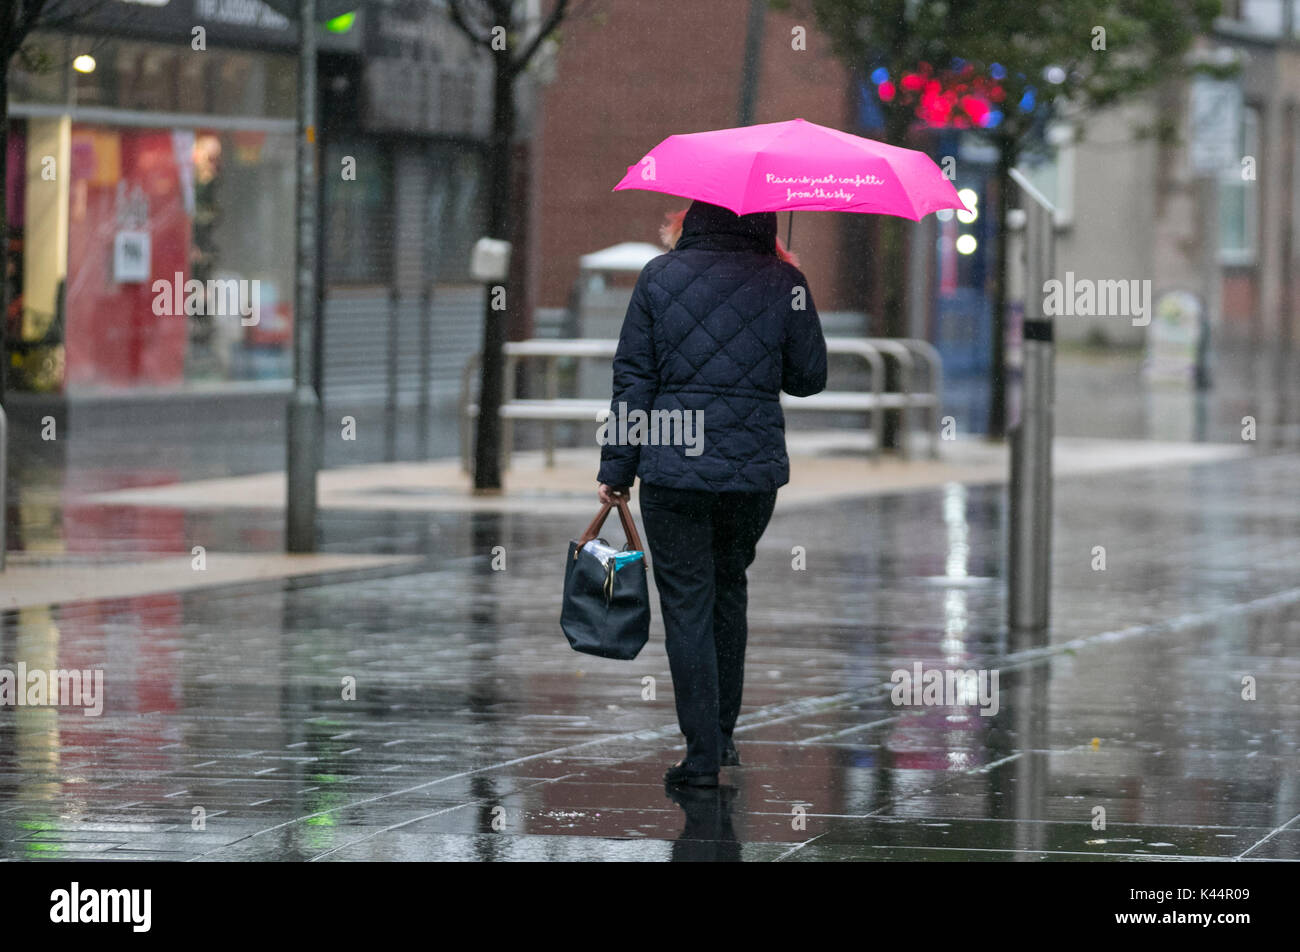 Southport, Merseyside. 5th Sept, 2017. UK Weather. Rainy, wet, blustery day at the resort heralds a big change to weather conditions with persistent heavy showers forecast for the north-west. Credit; MediaWorldImages/AlamyLiveNews - Stock Image